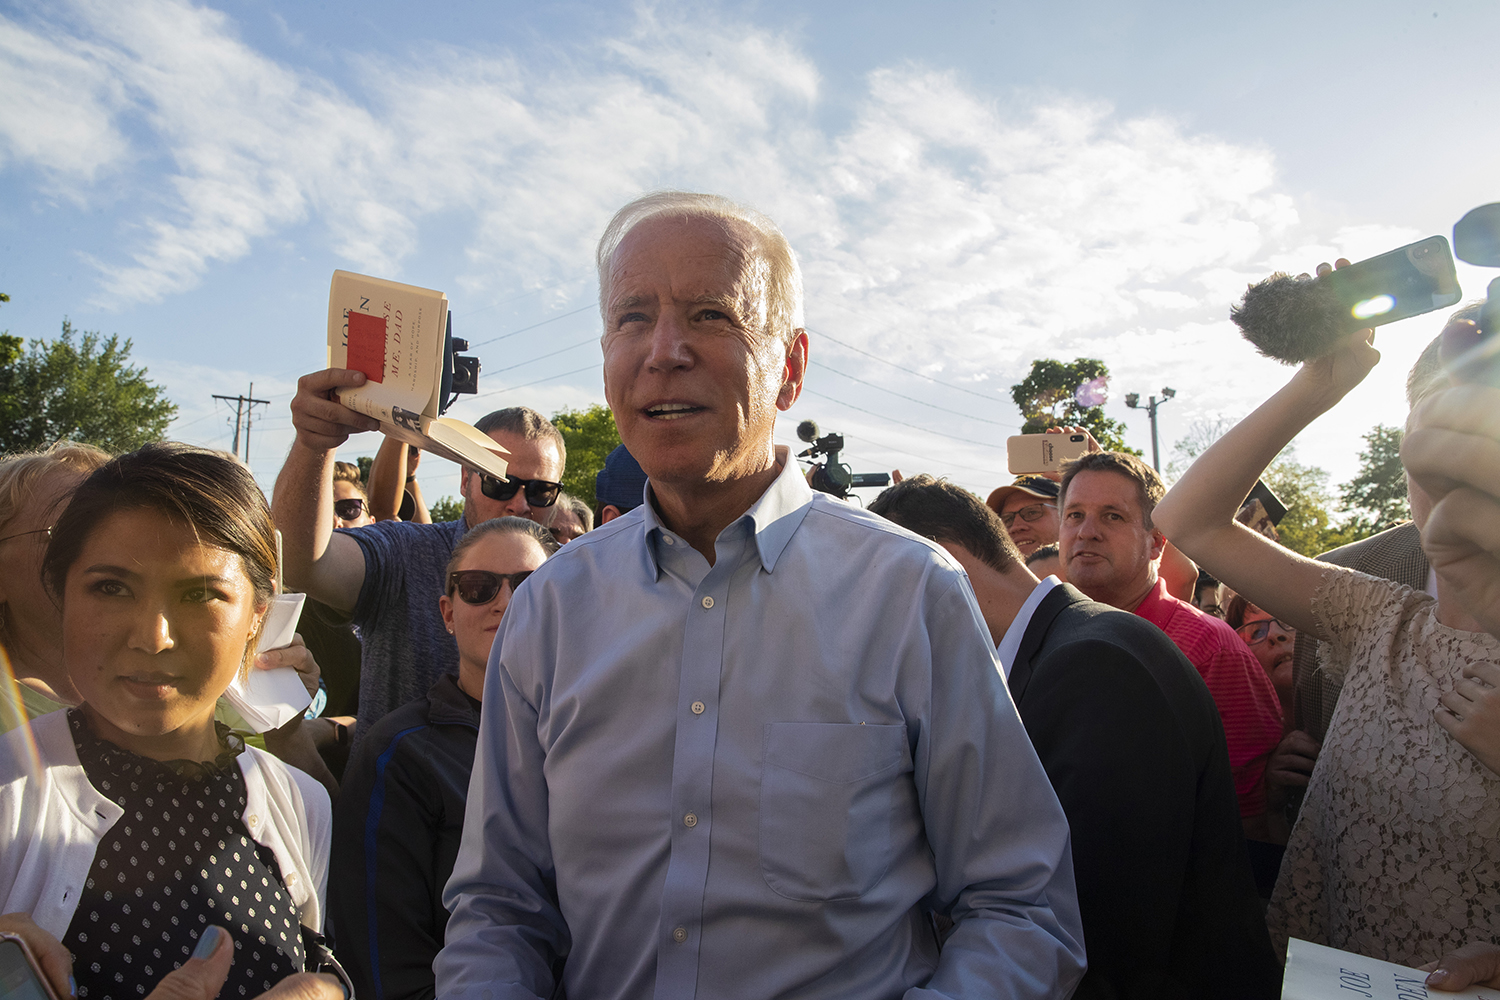 Former Vice President and 2020 democratic candidate Joe Biden greets attendees at the opening of his campaign office on S. Gilbert St. on Wednesday, August 7, 2019. (Jenna Galligan/The Daily Iowan)